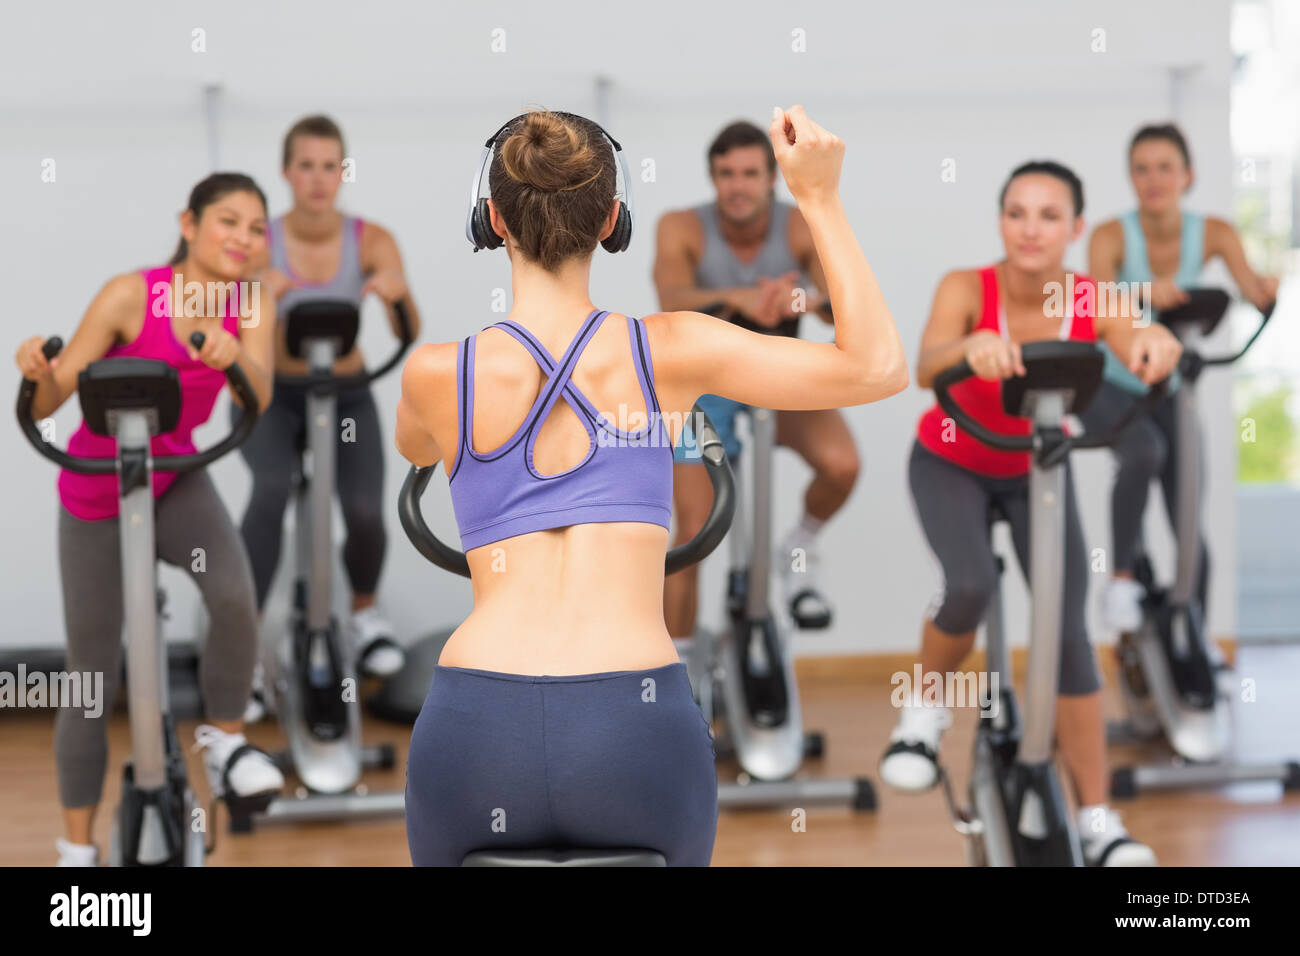 Trainer and fitness class at spinning class - Stock Image